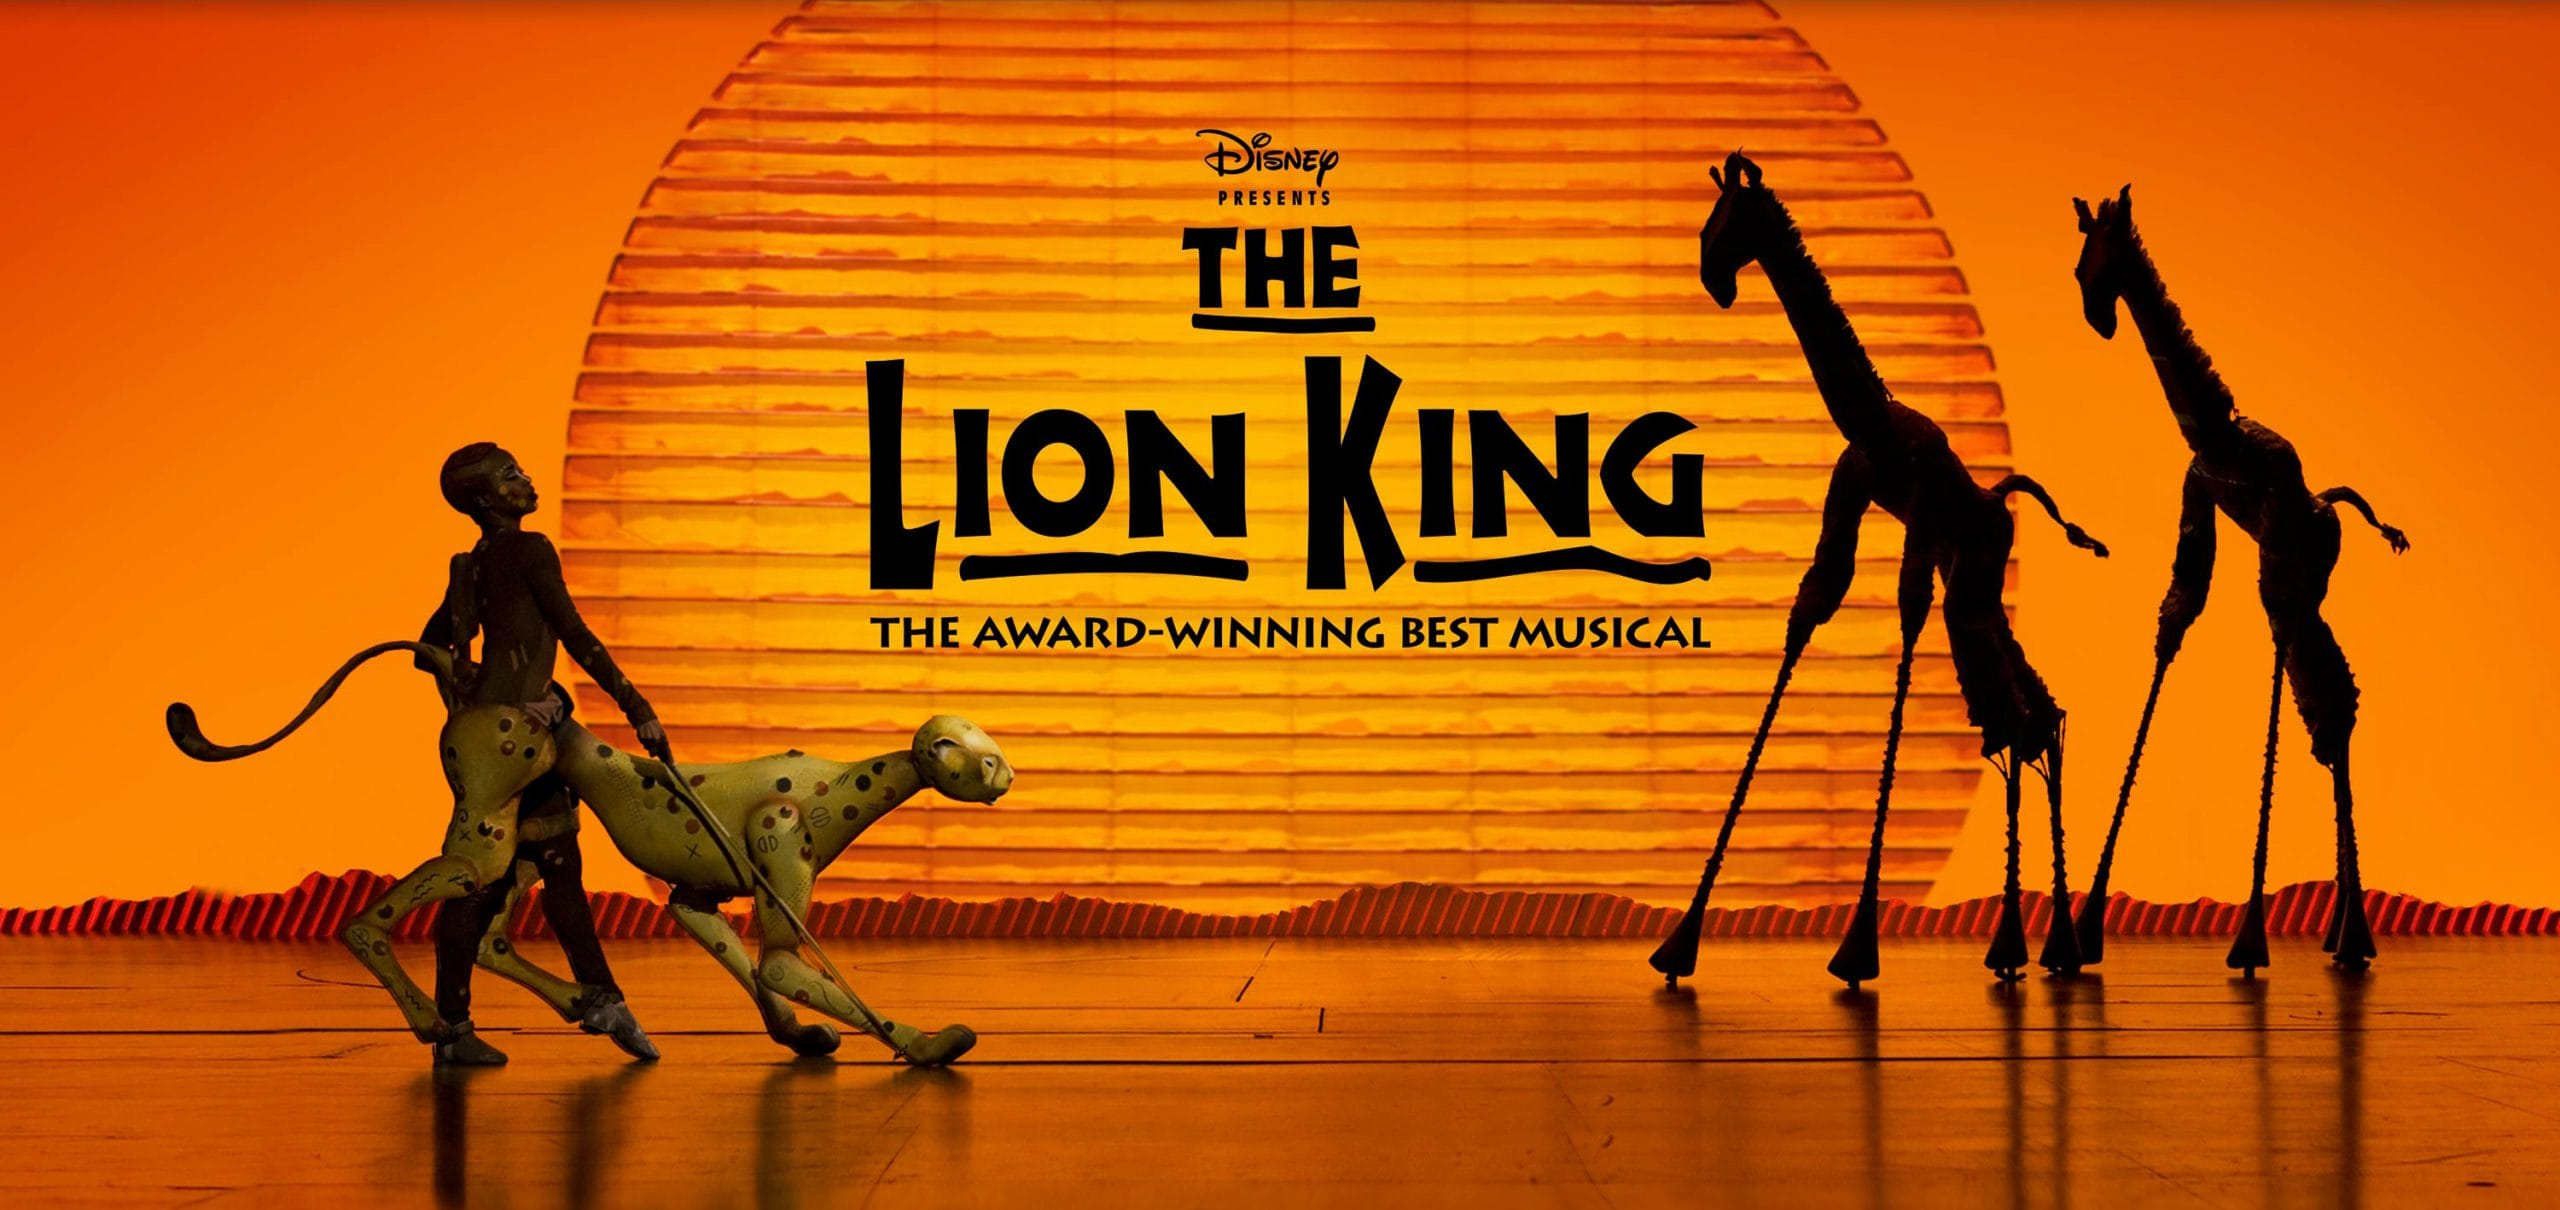 THE LION KING - The Award Winning Best Musical